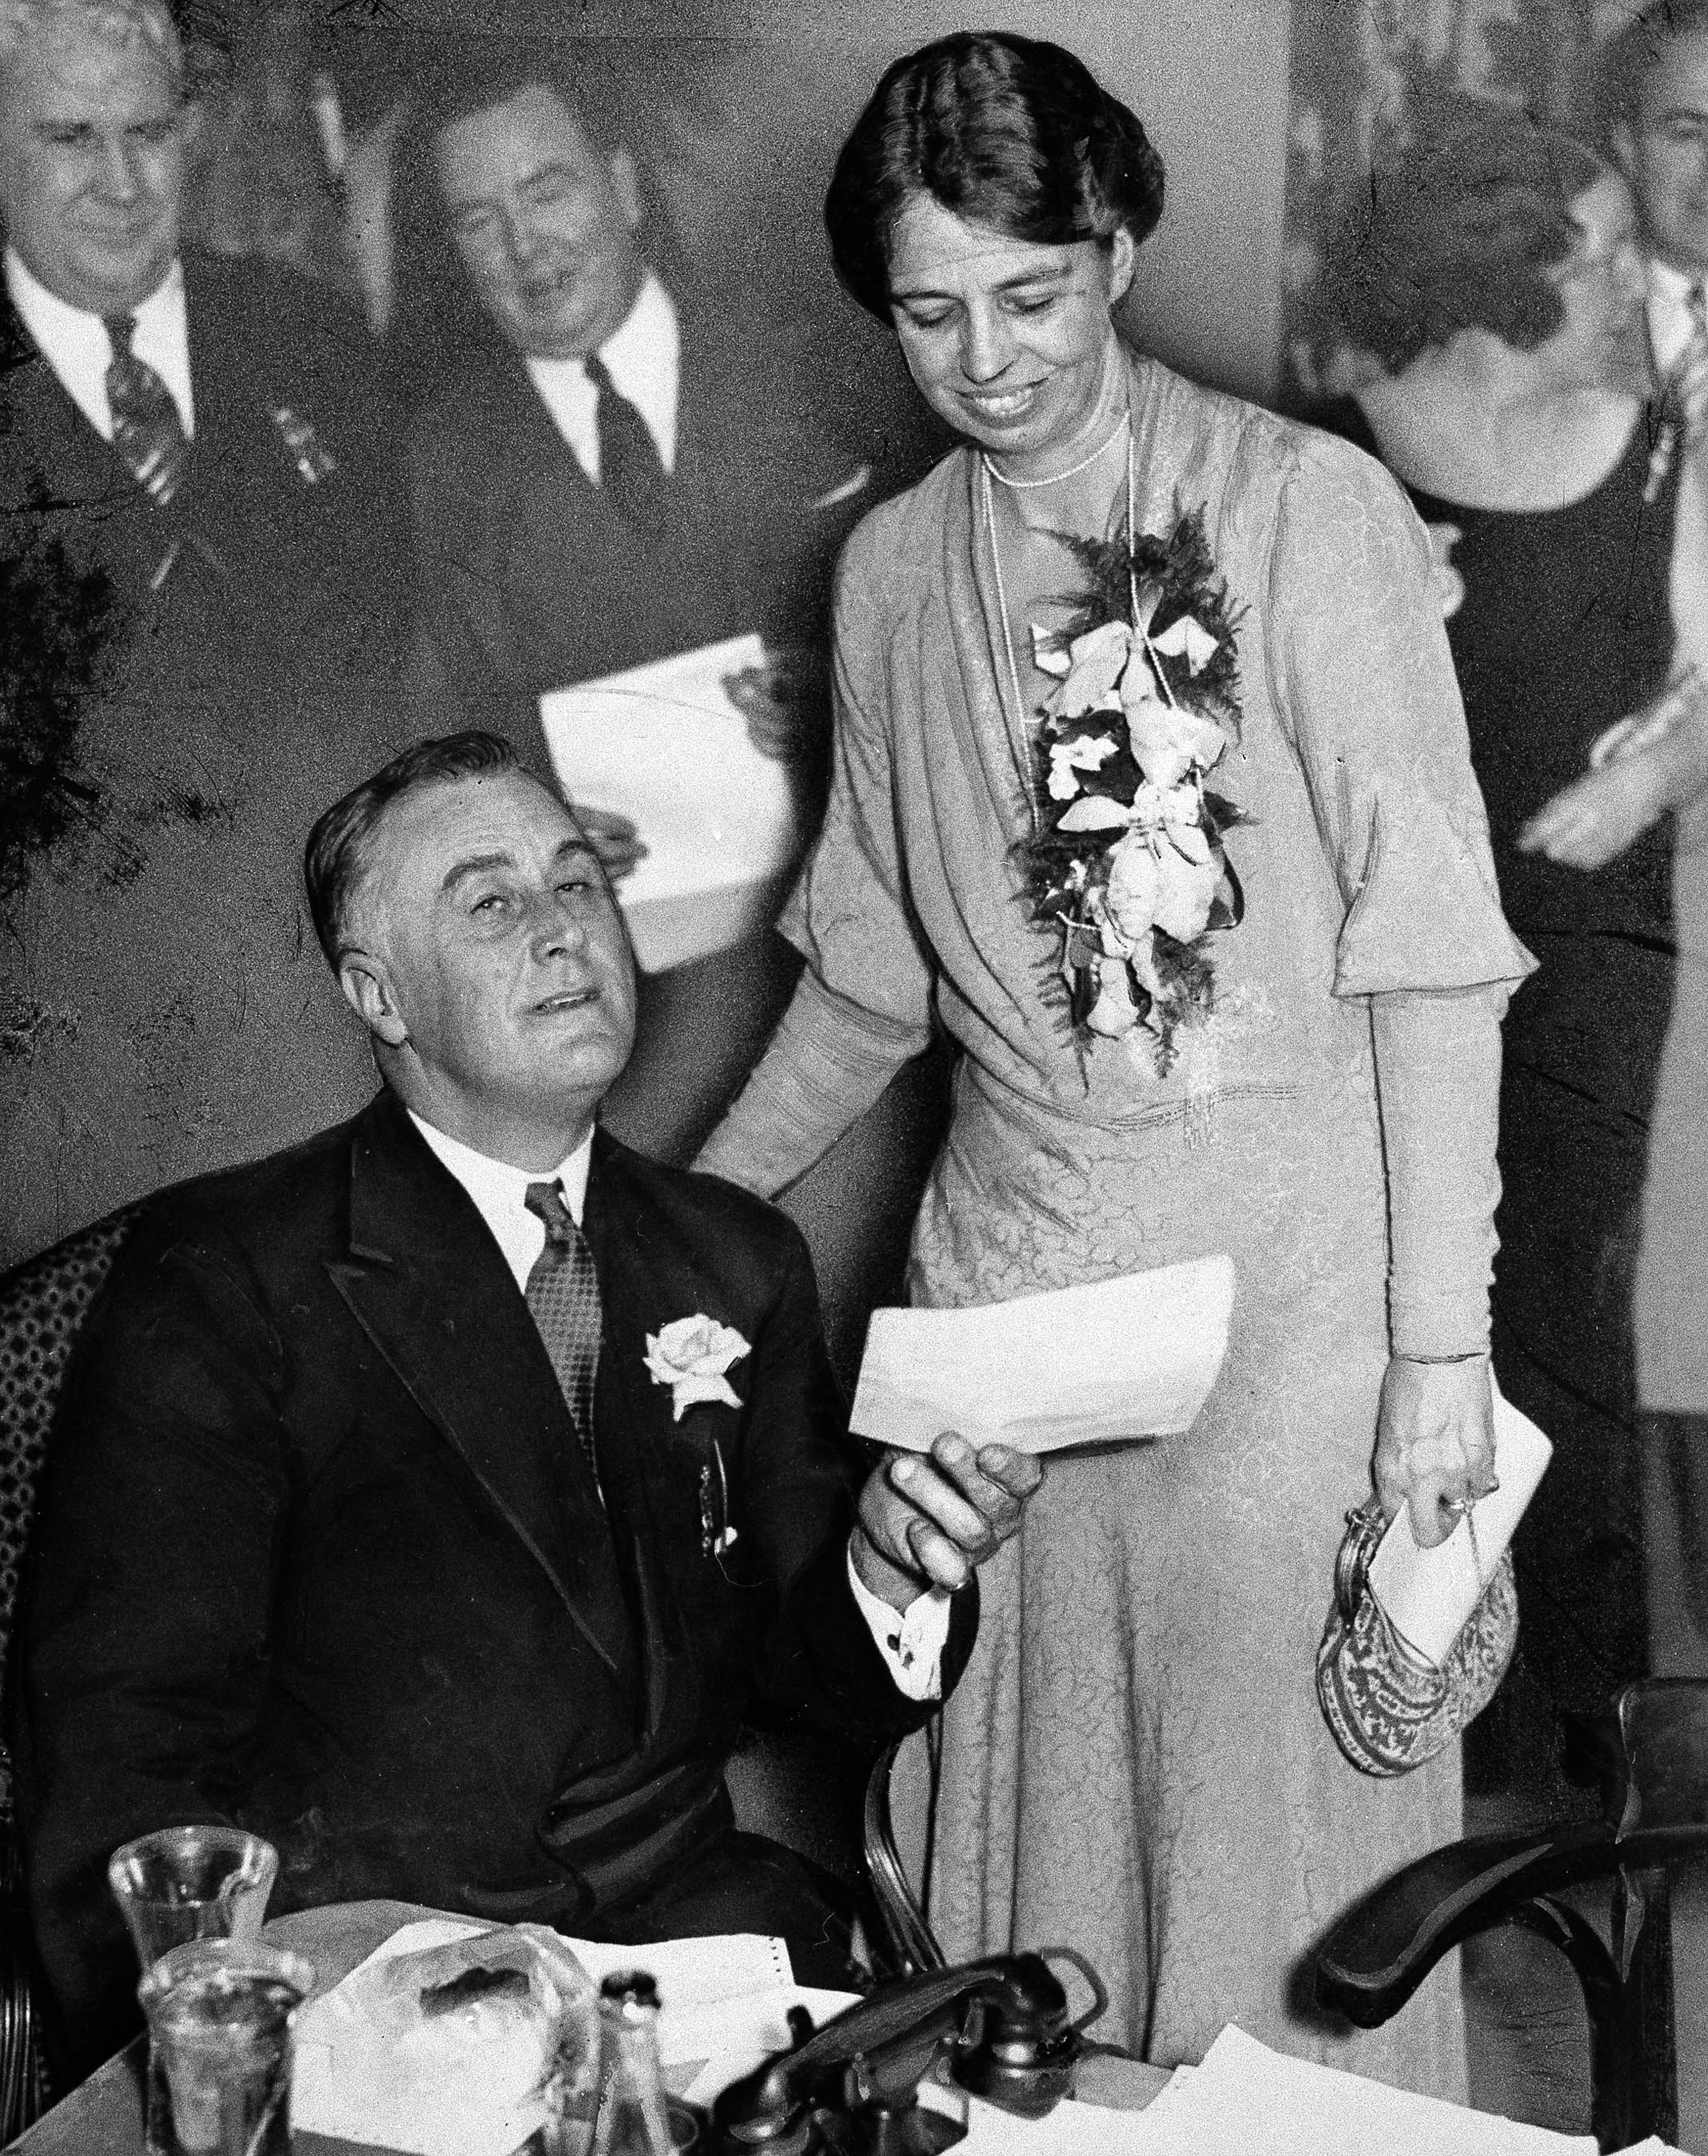 President-elect Franklin D. Roosevelt of New York holds one of many congratulatory telegrams received on his victory in the presidential election at the Hotel Biltmore in New York City,  on Nov. 8, 1932. His wife Eleanor smiles as she reads over his shoulder.